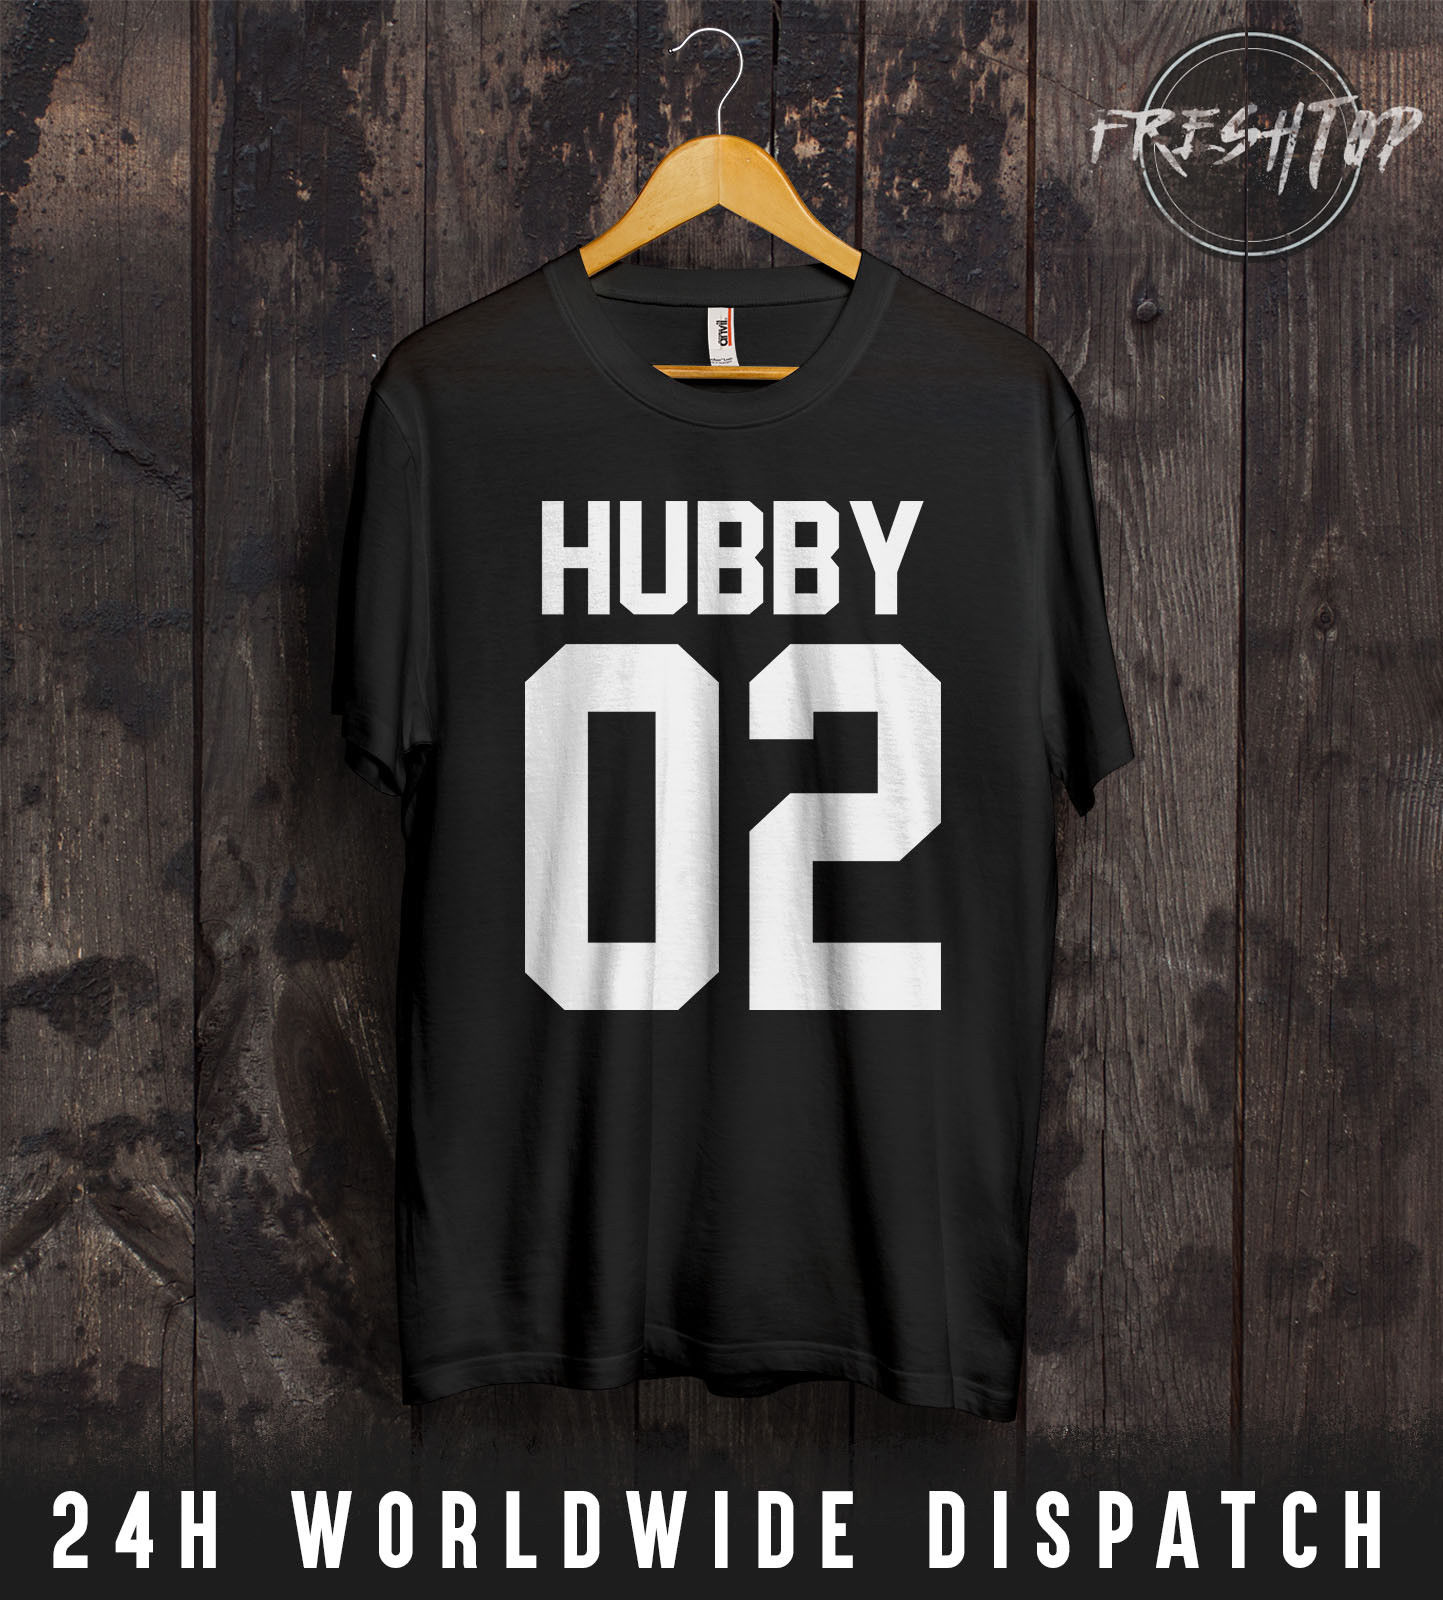 a78727da0b Hubby Wifey 01 02 T Shirt Couple Matching Gift Idea The King His Queen  Husband New Tee New Unisex Funny Tops freeshipping